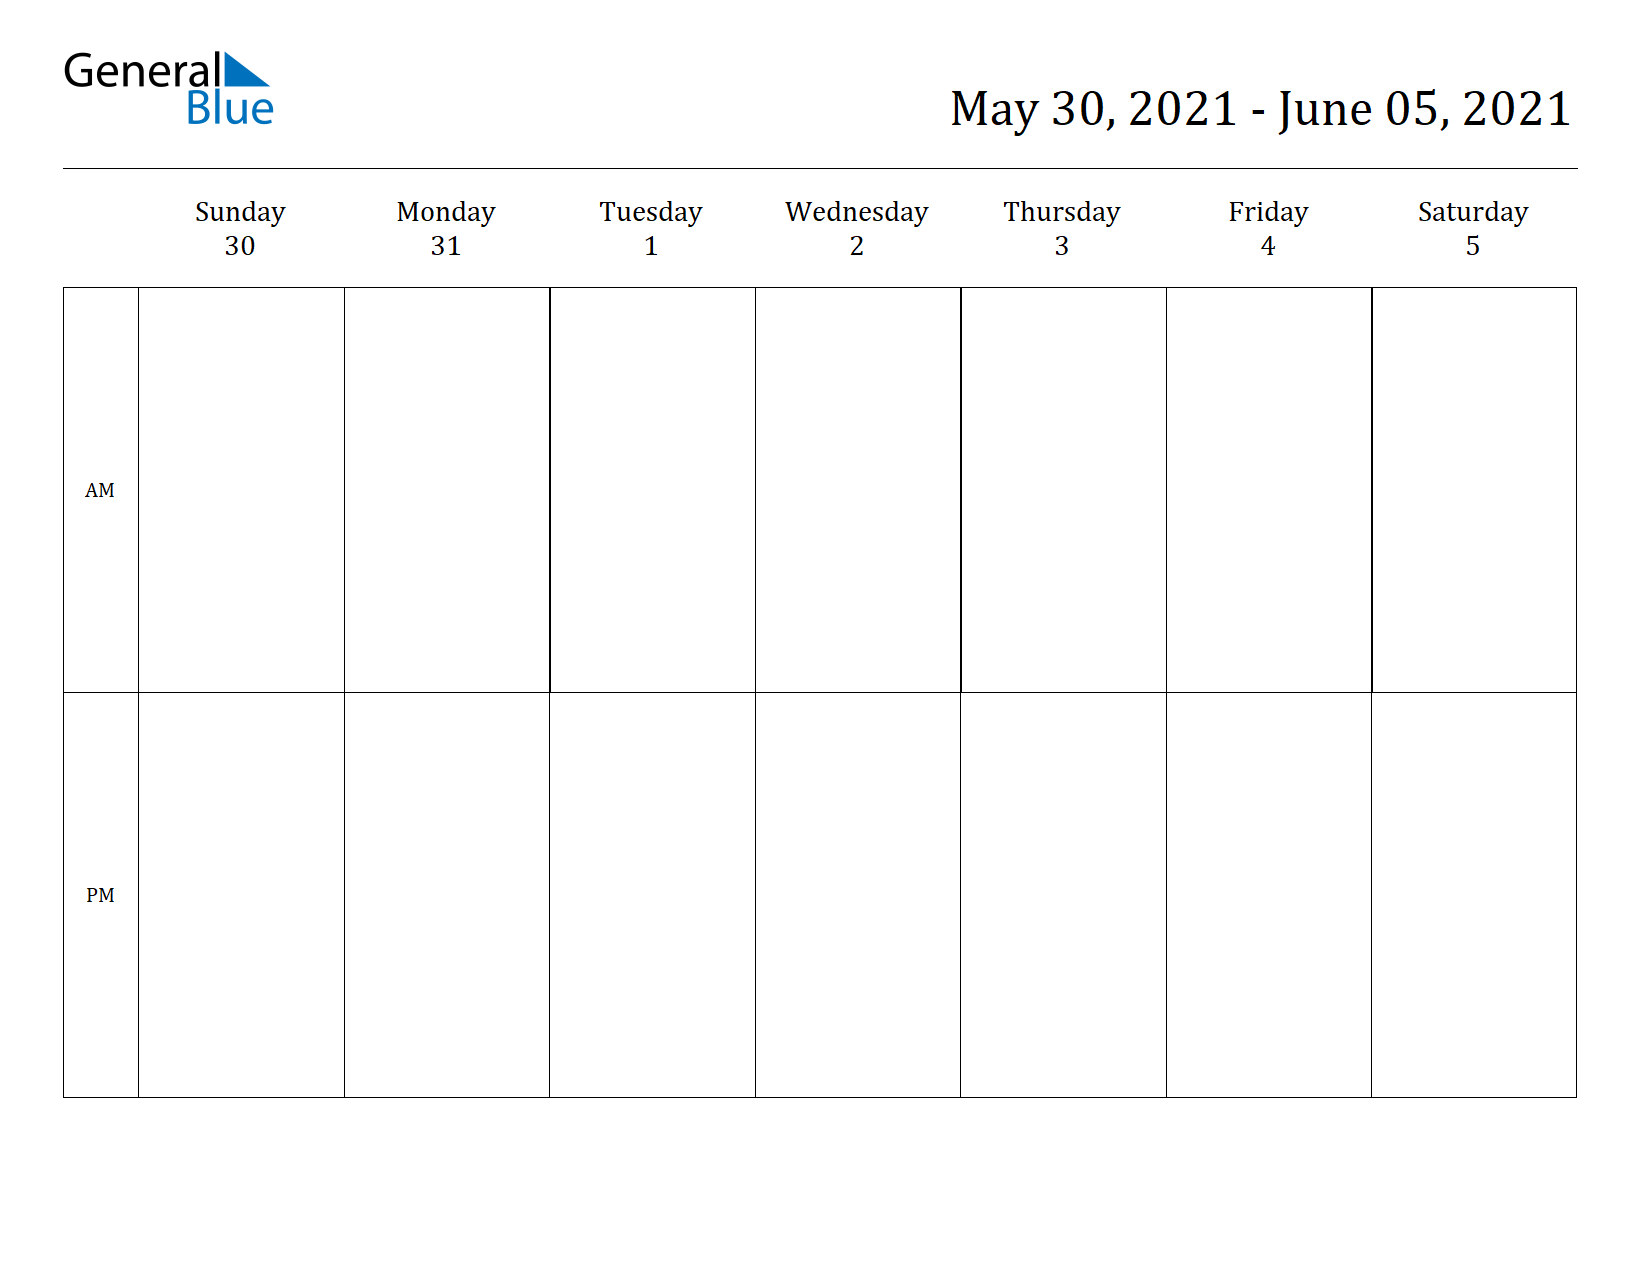 Weekly Calendar for May 30, 2021 to Jun 05, 2021